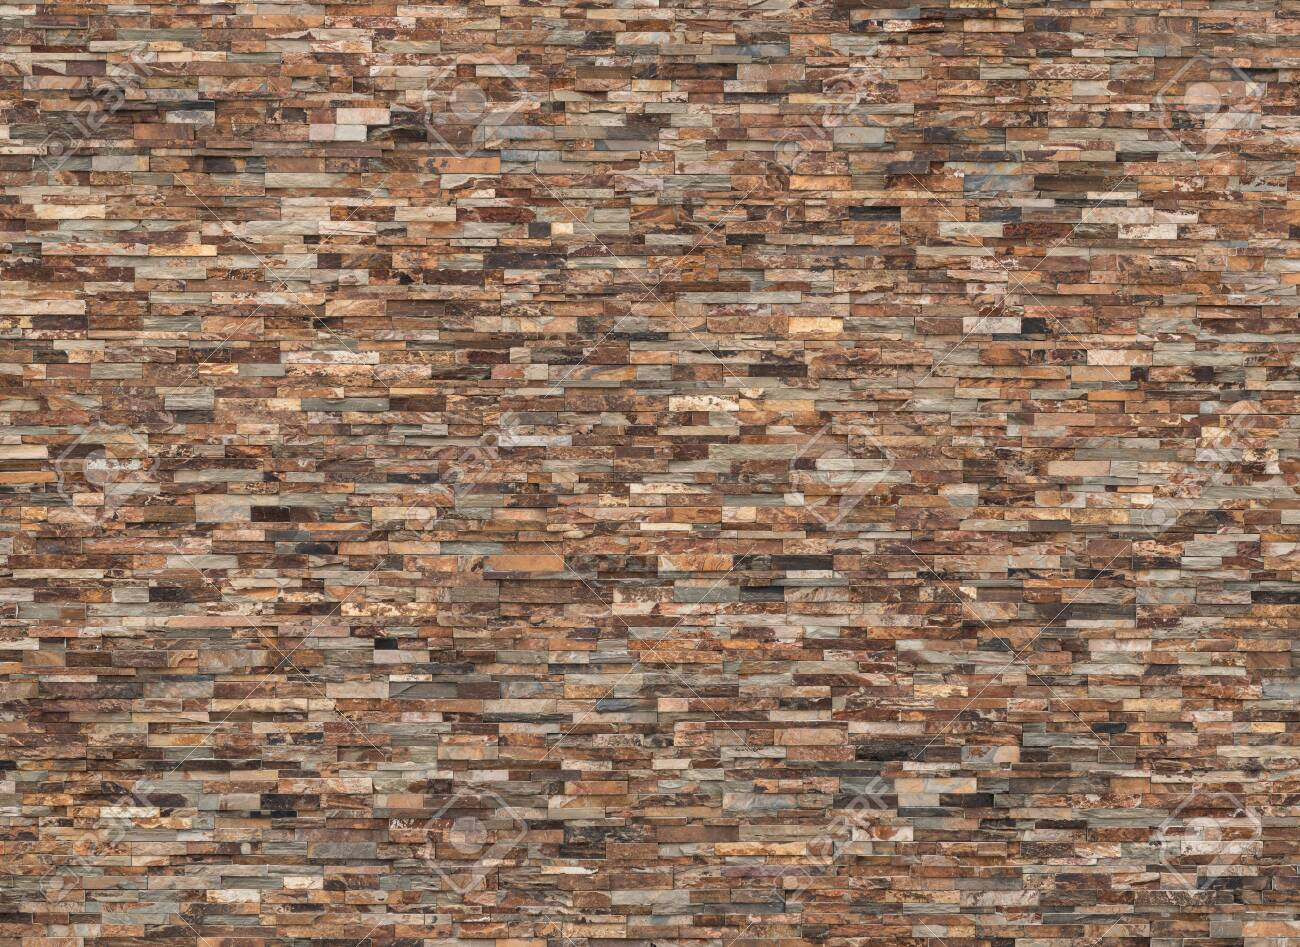 background and texture of vintage real slate stone wall - 131129476